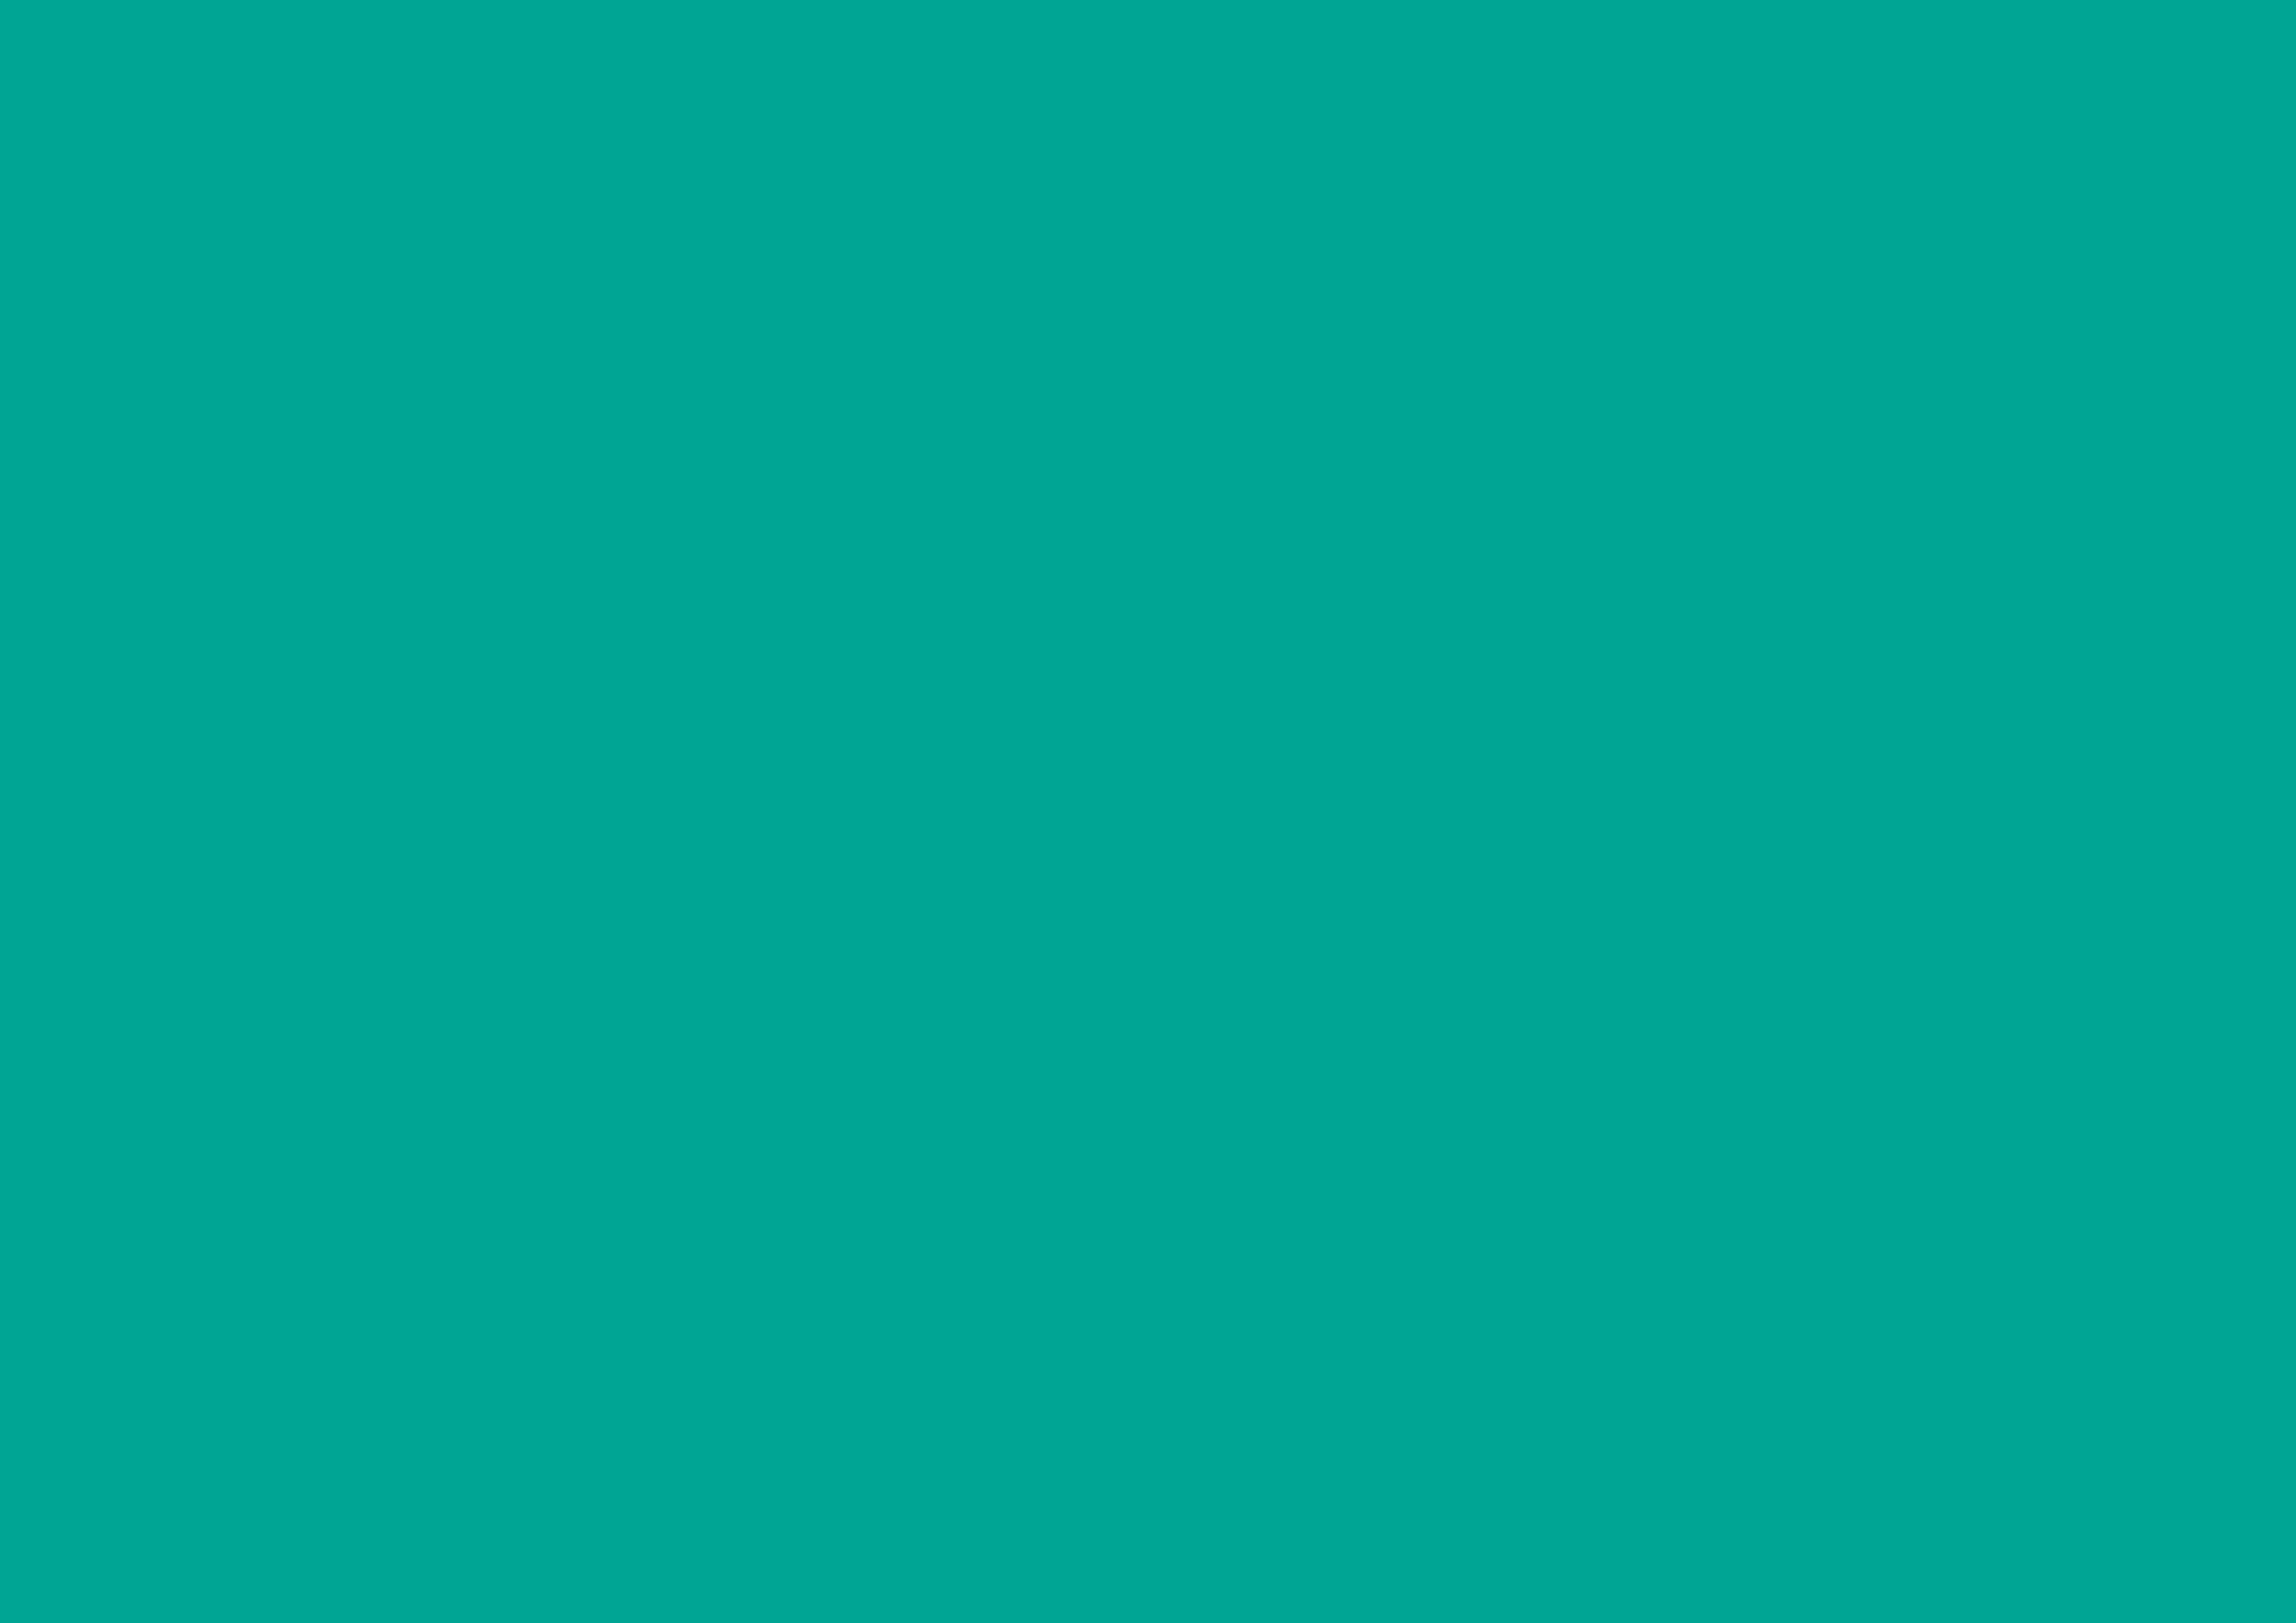 3508x2480 Persian Green Solid Color Background